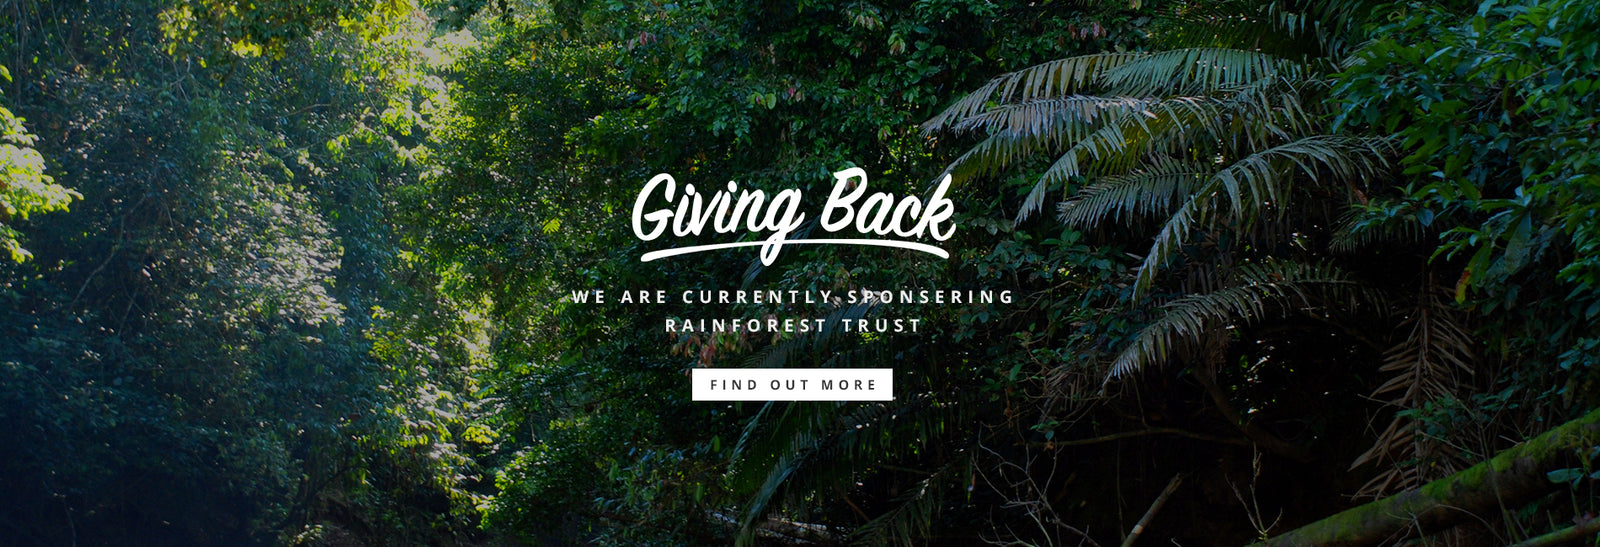 EnviroBuild Rainforest Trust